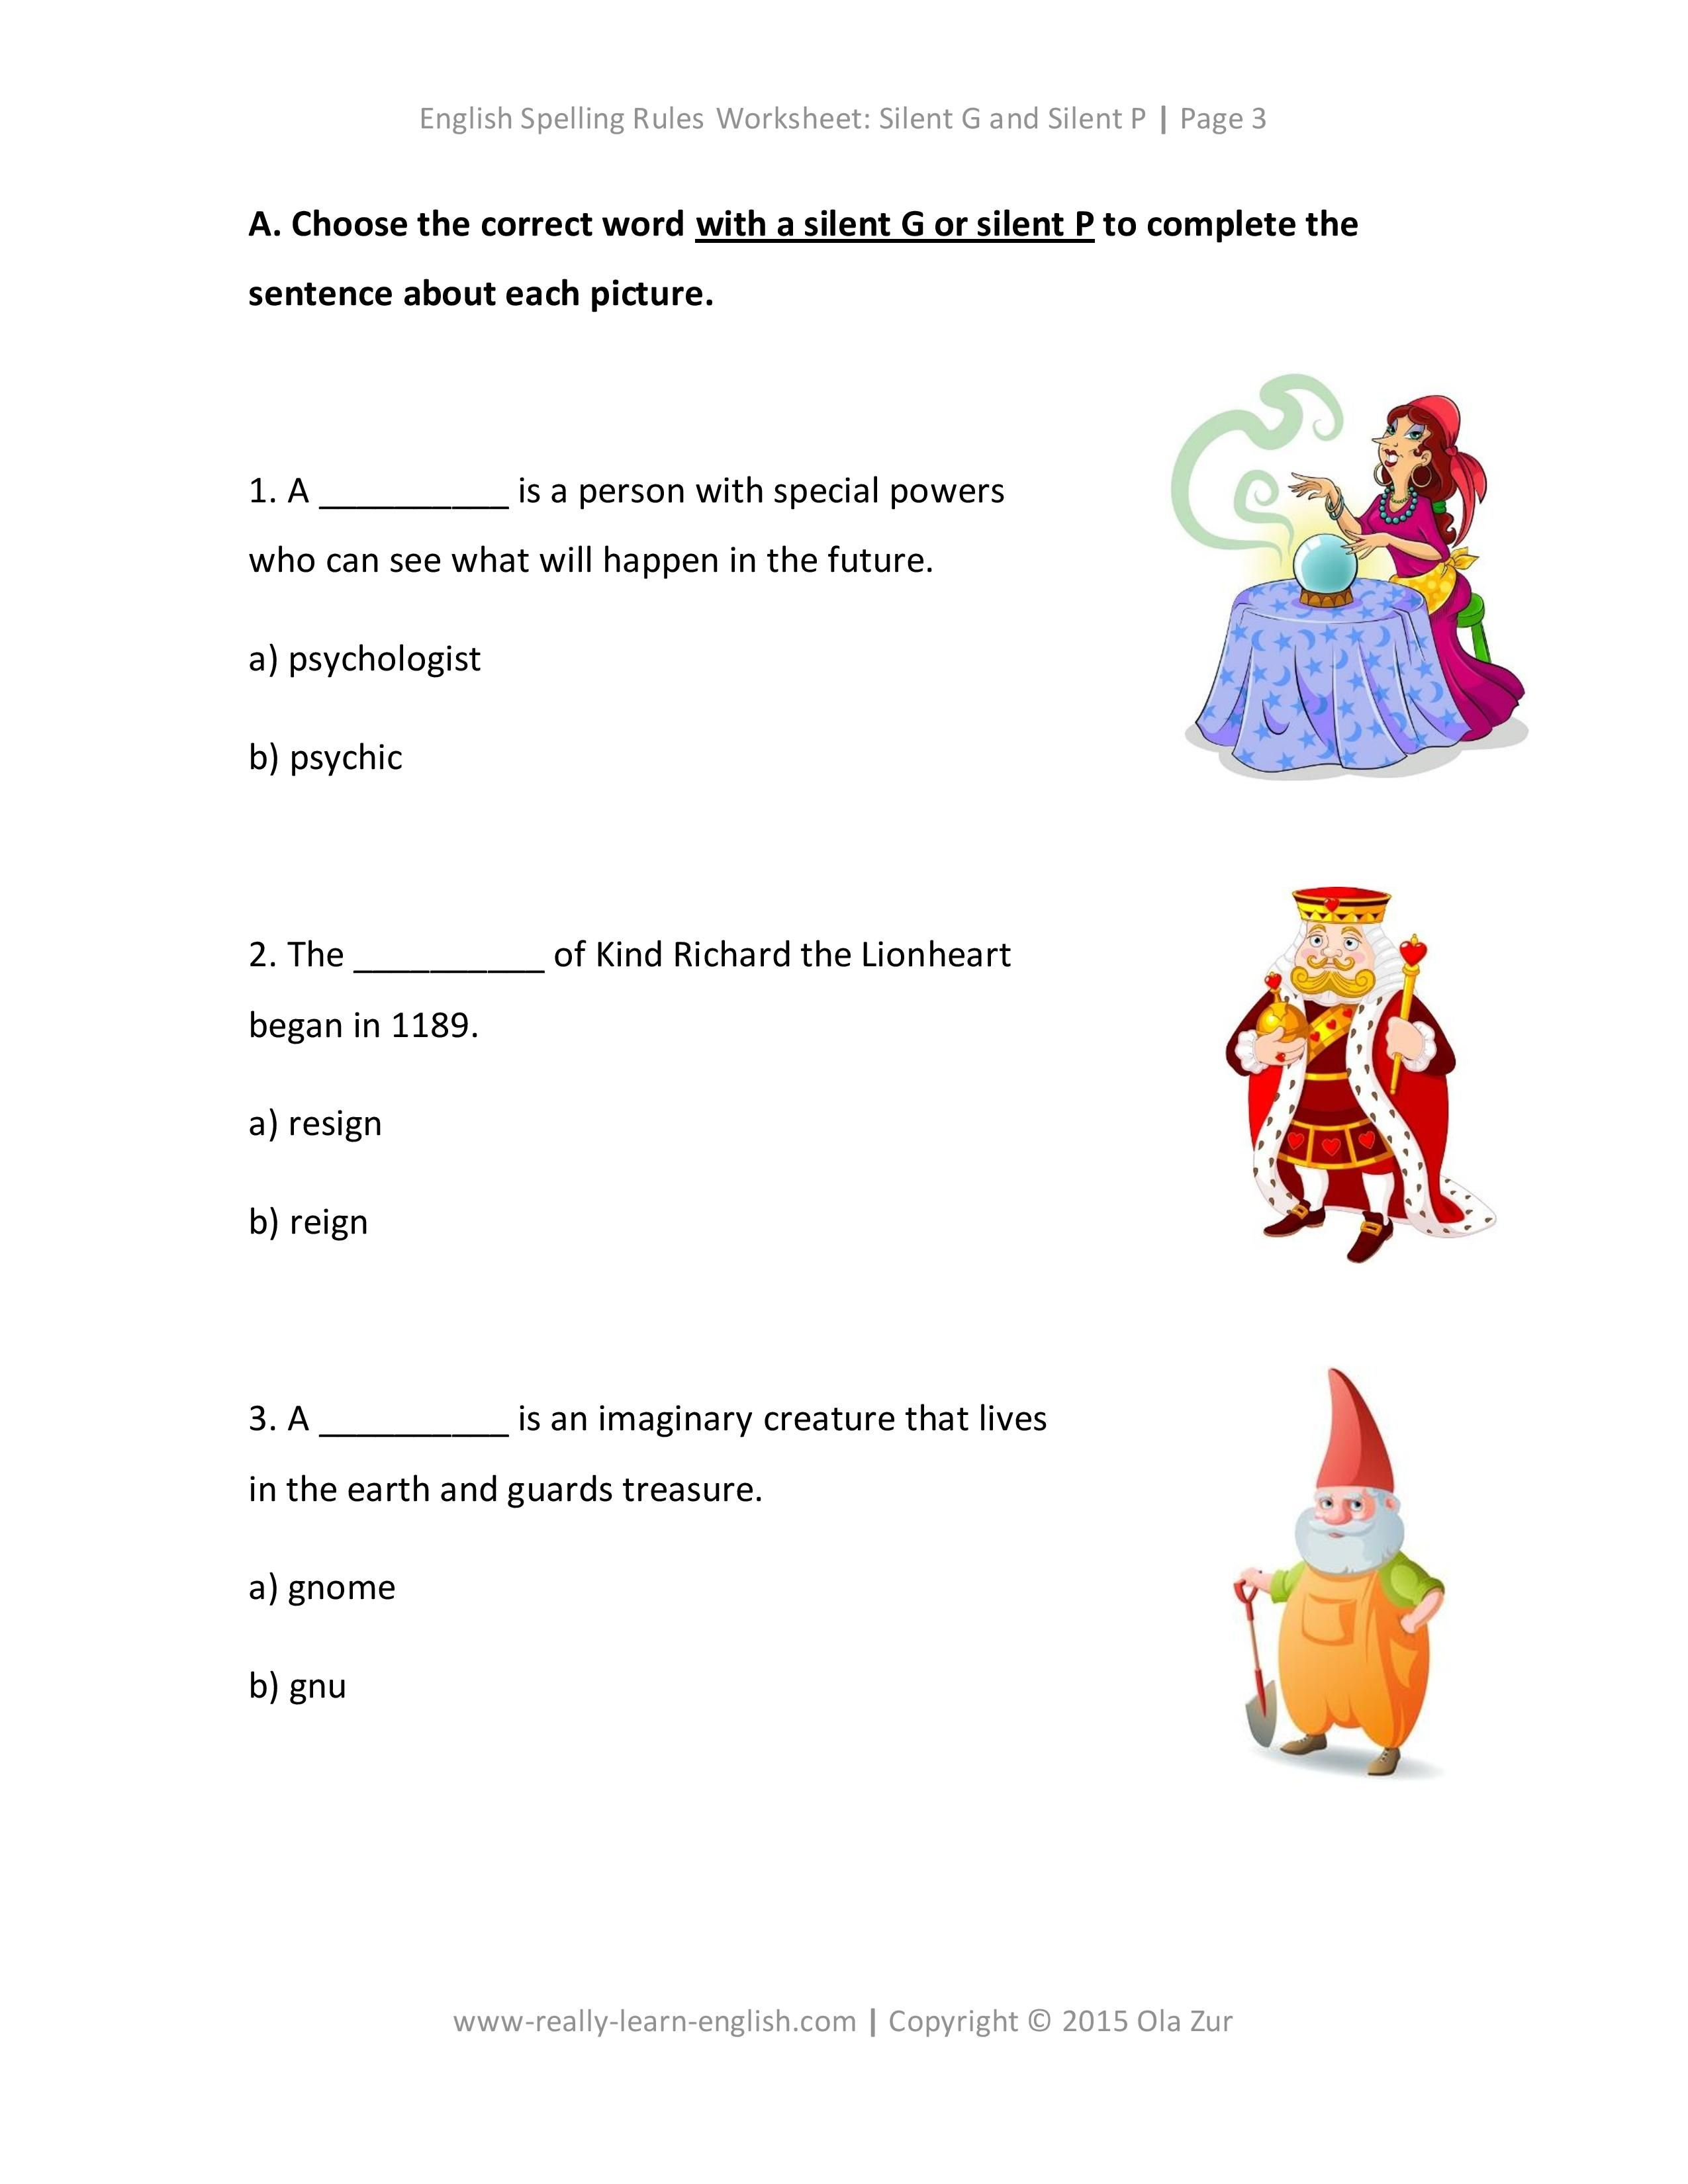 The Complete List Of English Spelling Rules Lesson 6